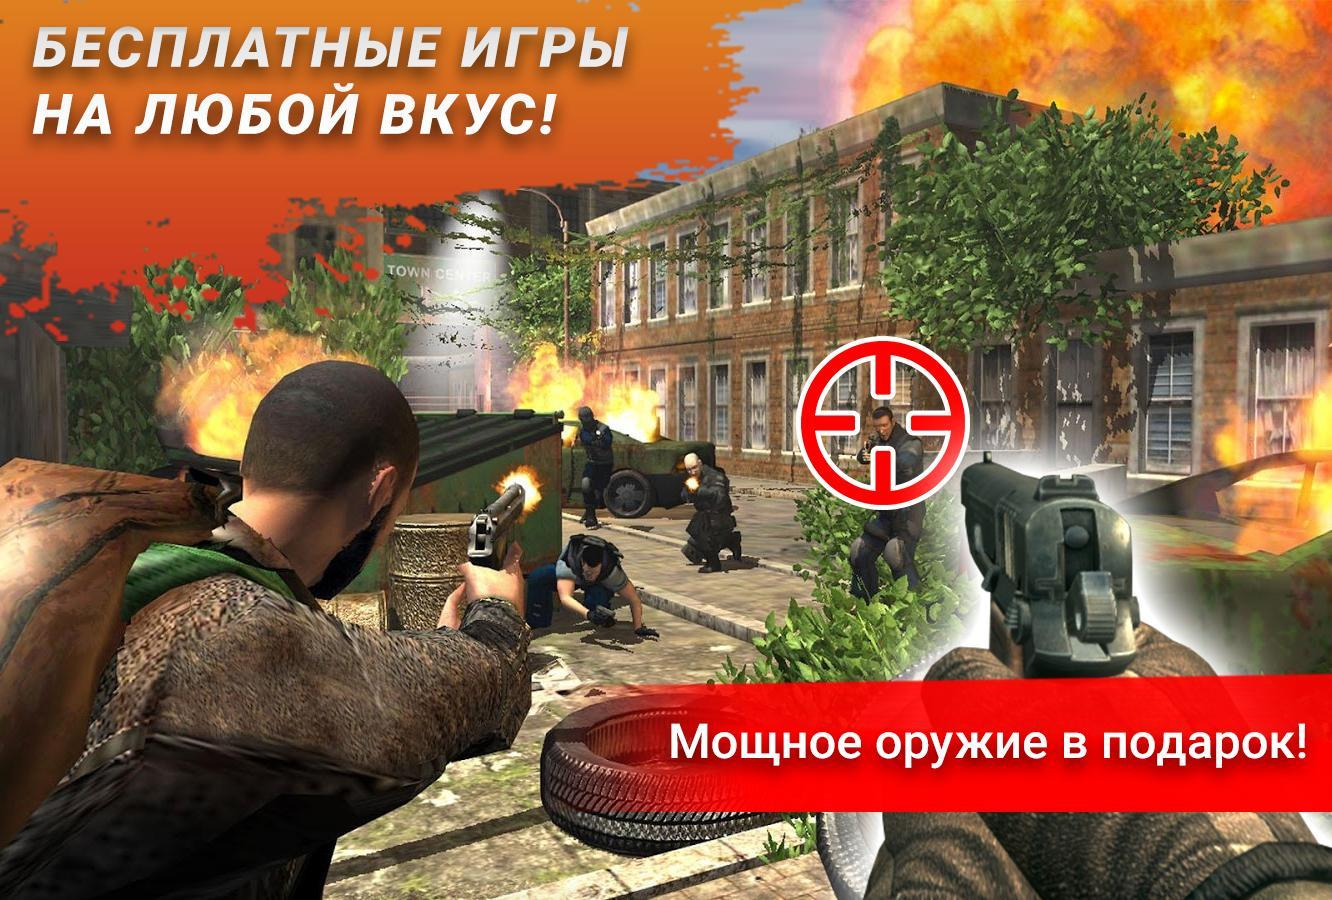 Igry Menshe 20 Mb For Android Apk Download